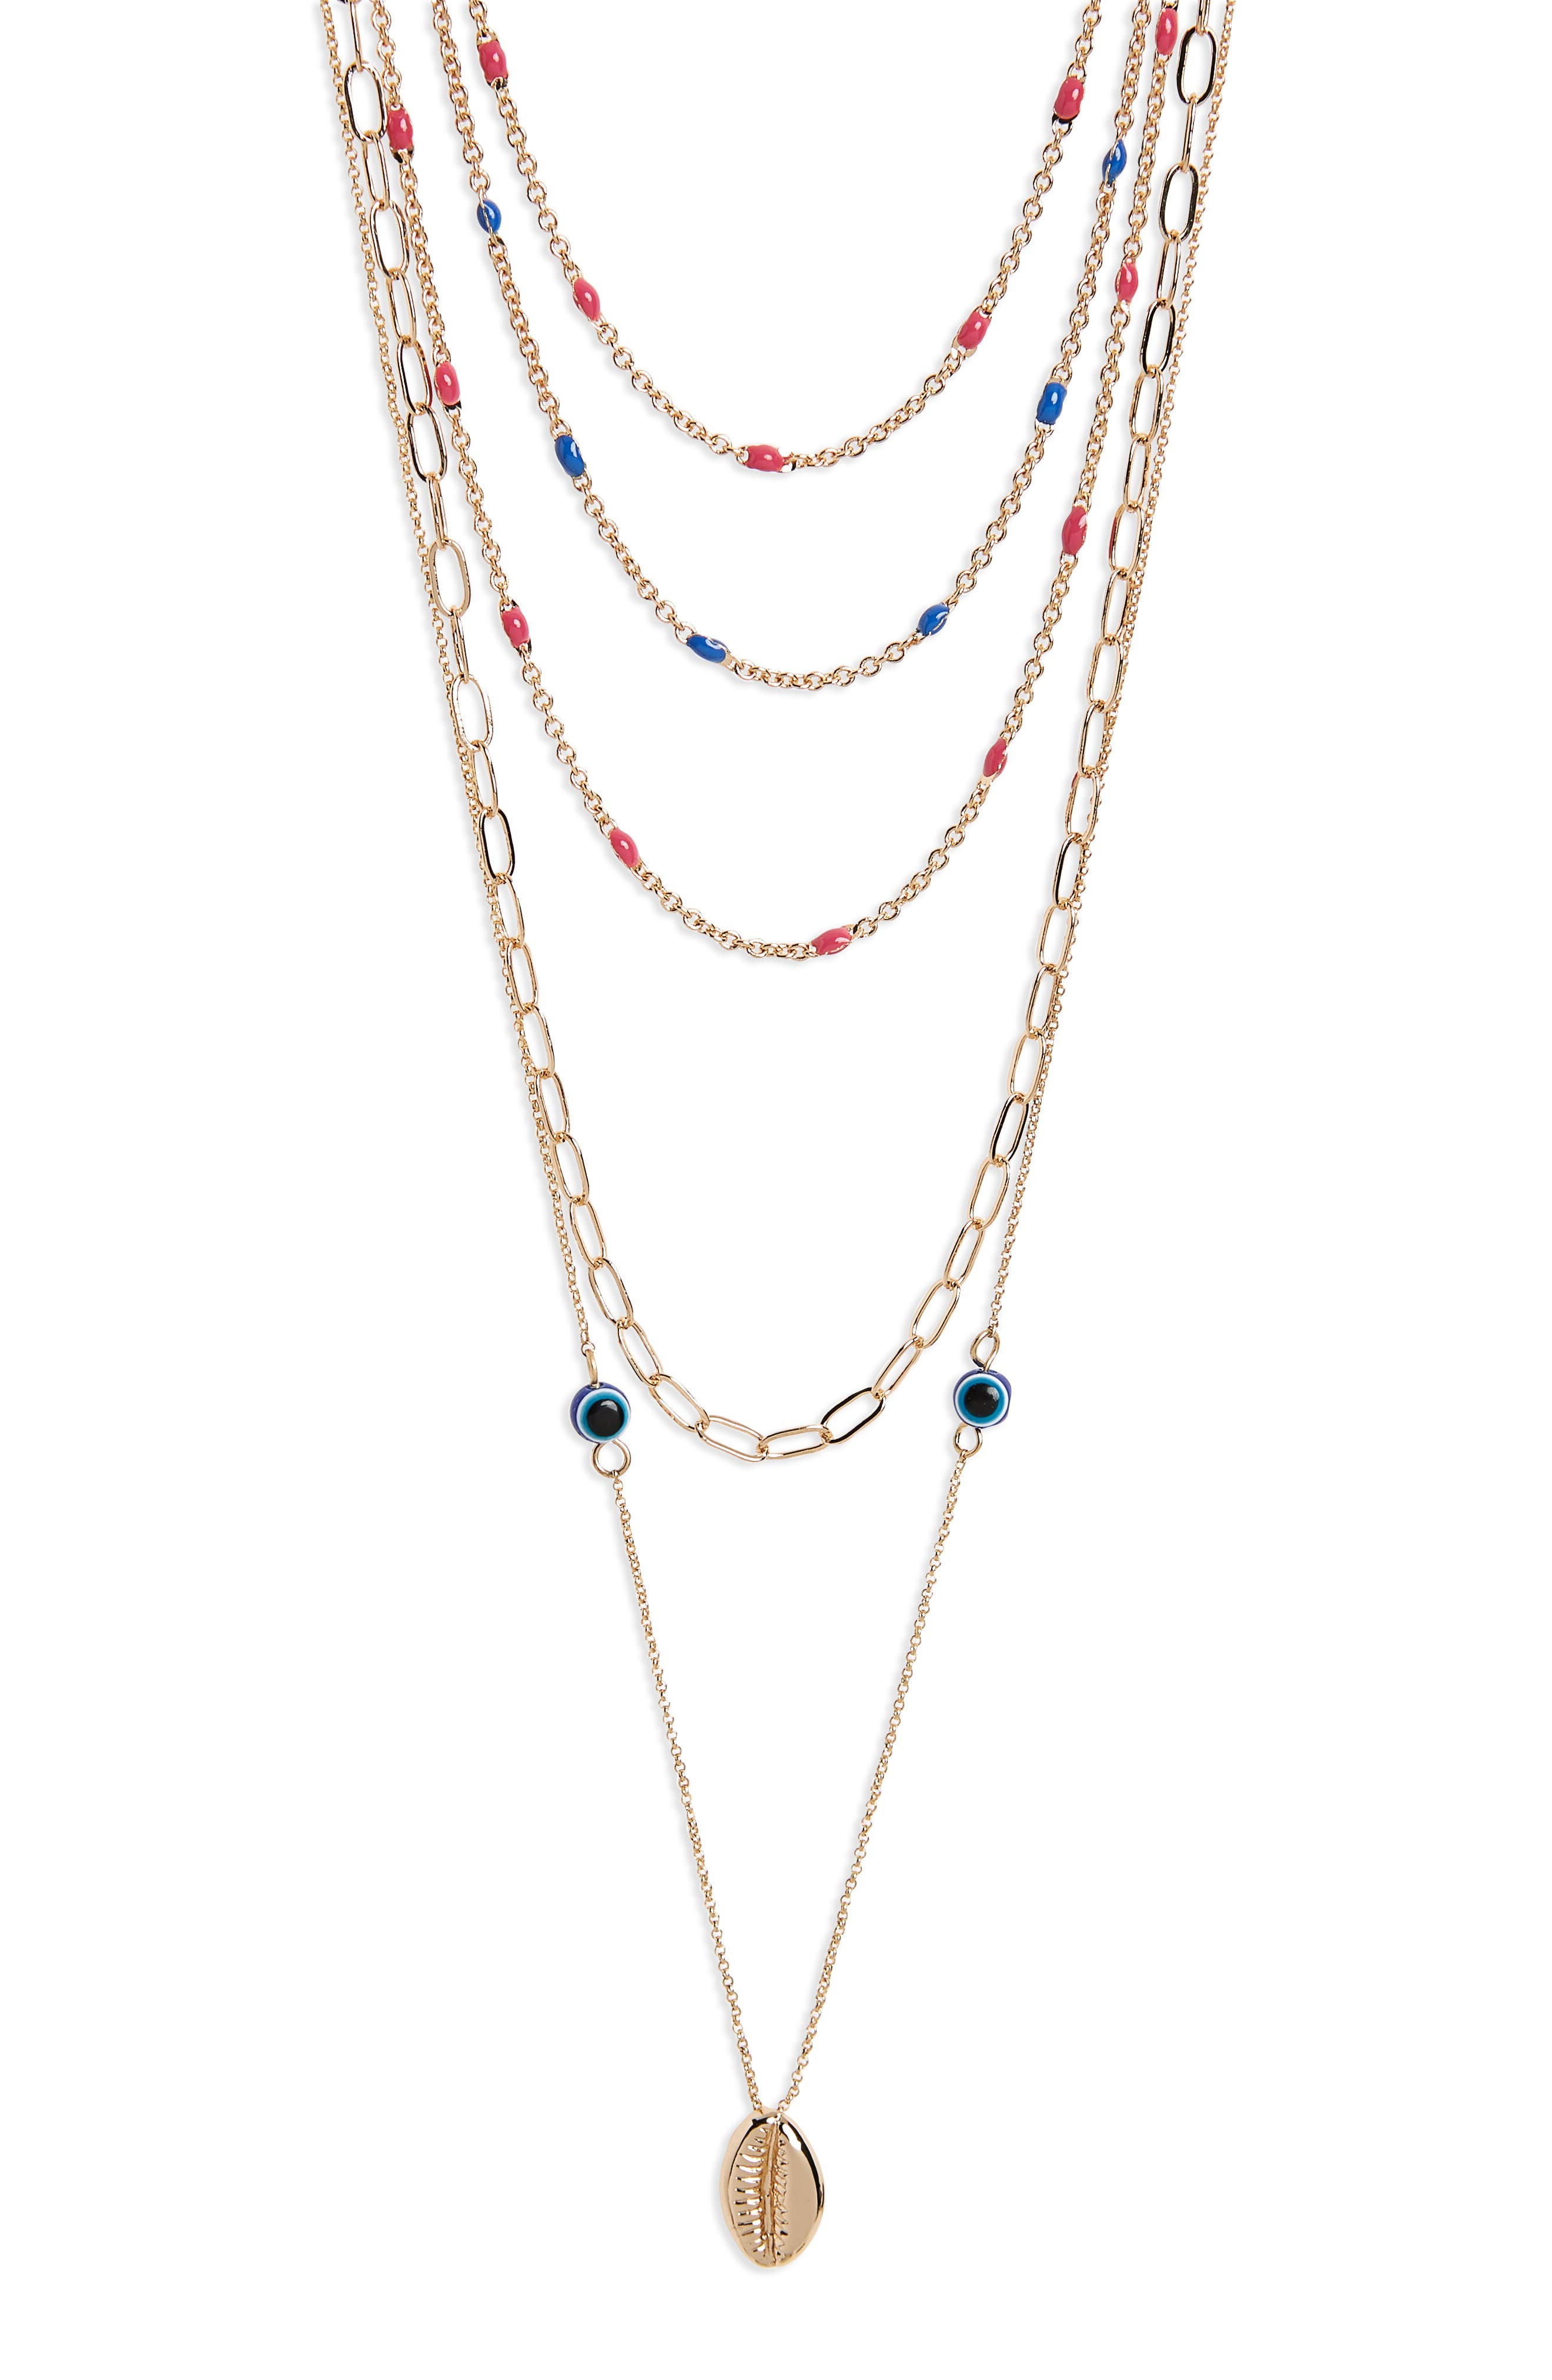 Beachy Layered Chains Necklace,                             Alternate thumbnail 2, color,